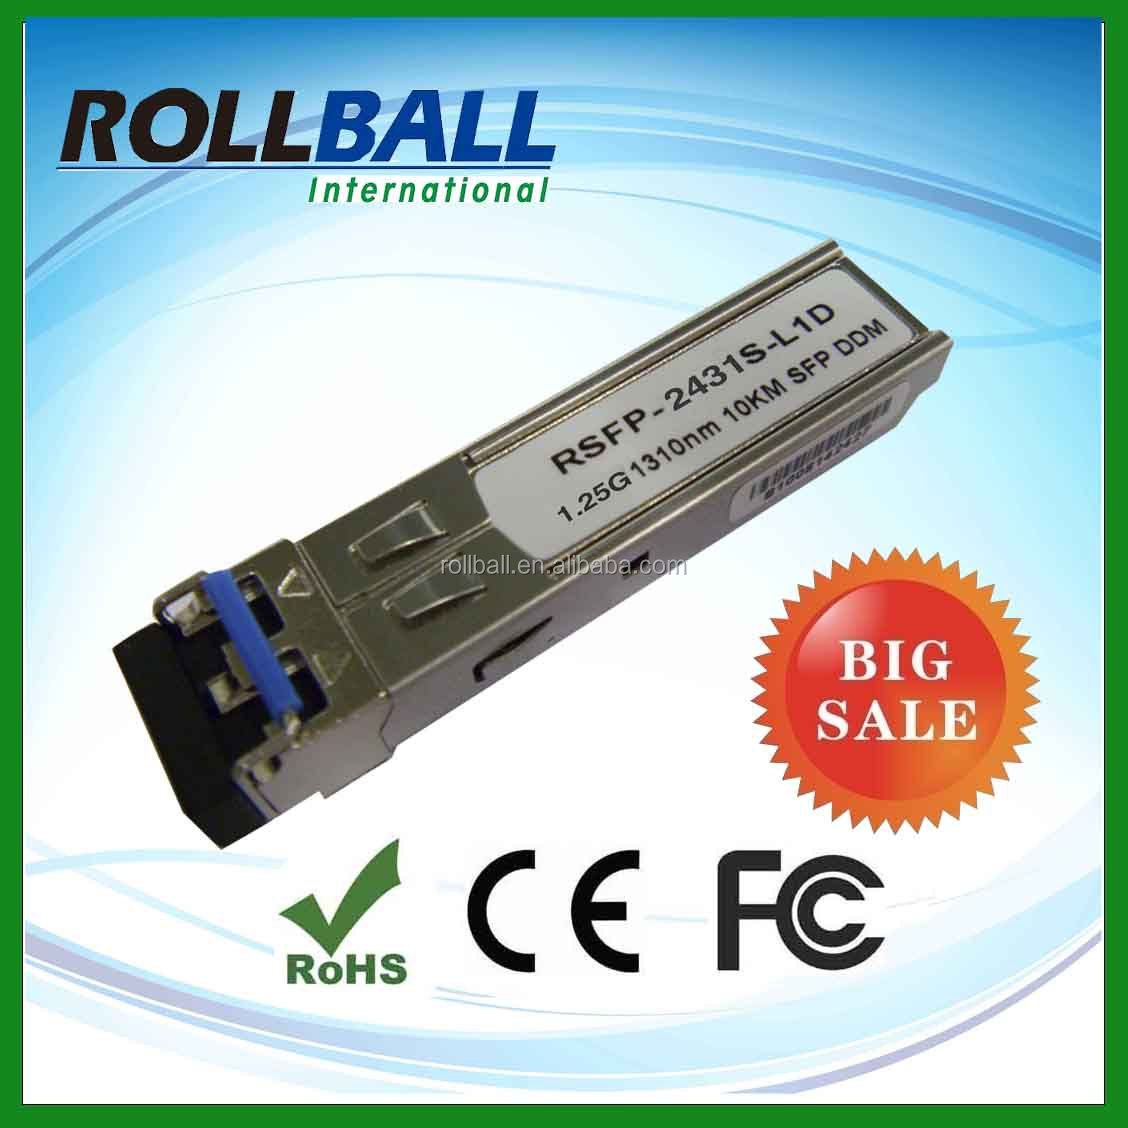 Hot selling 1.25G 850nm j4858a